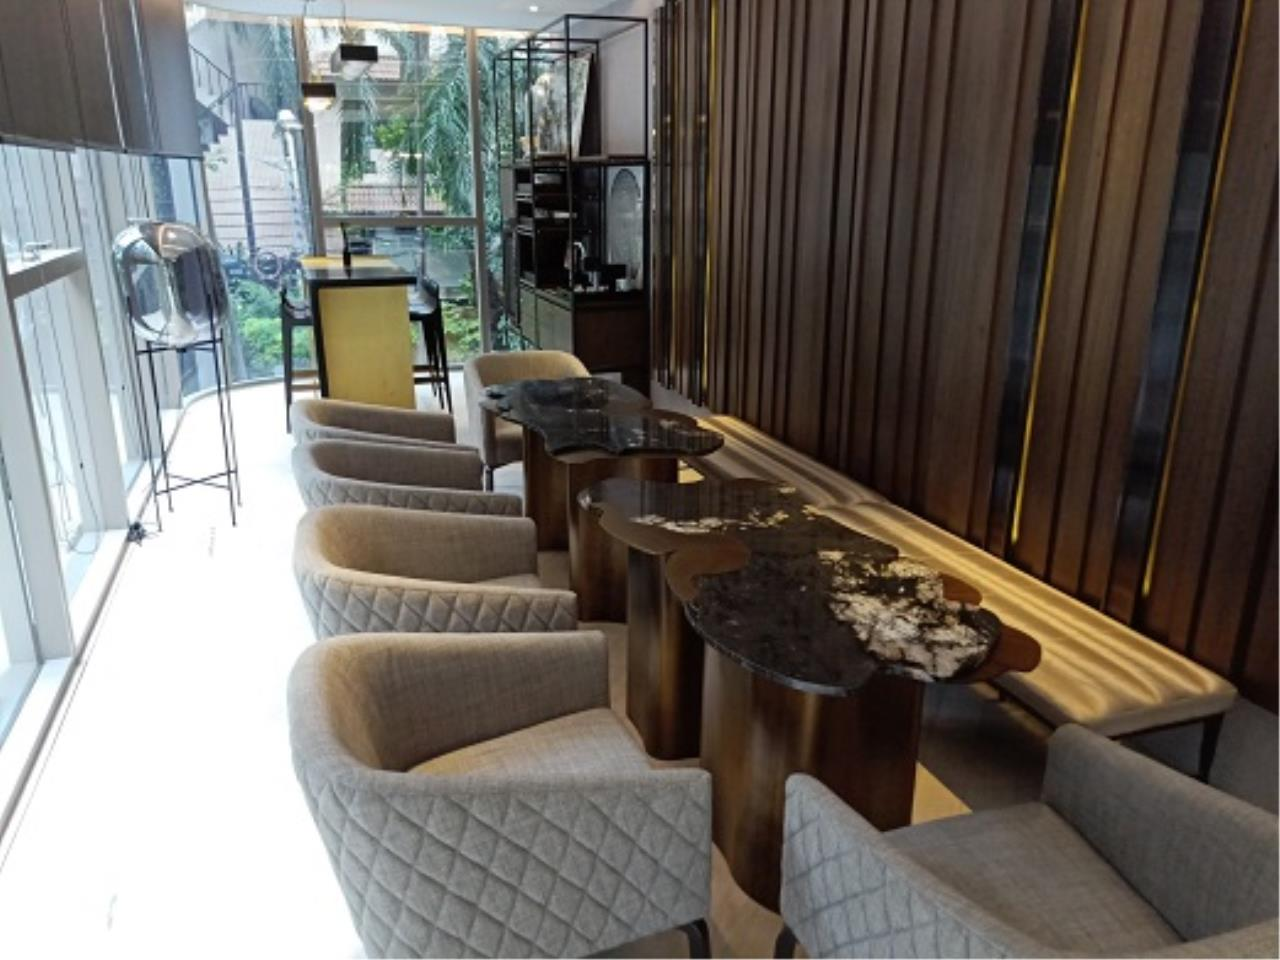 RE/MAX All Star Realty Agency's Ashton Residence 41 High Luxury Condo for sale/rent (BTS Phrom Pong) 10